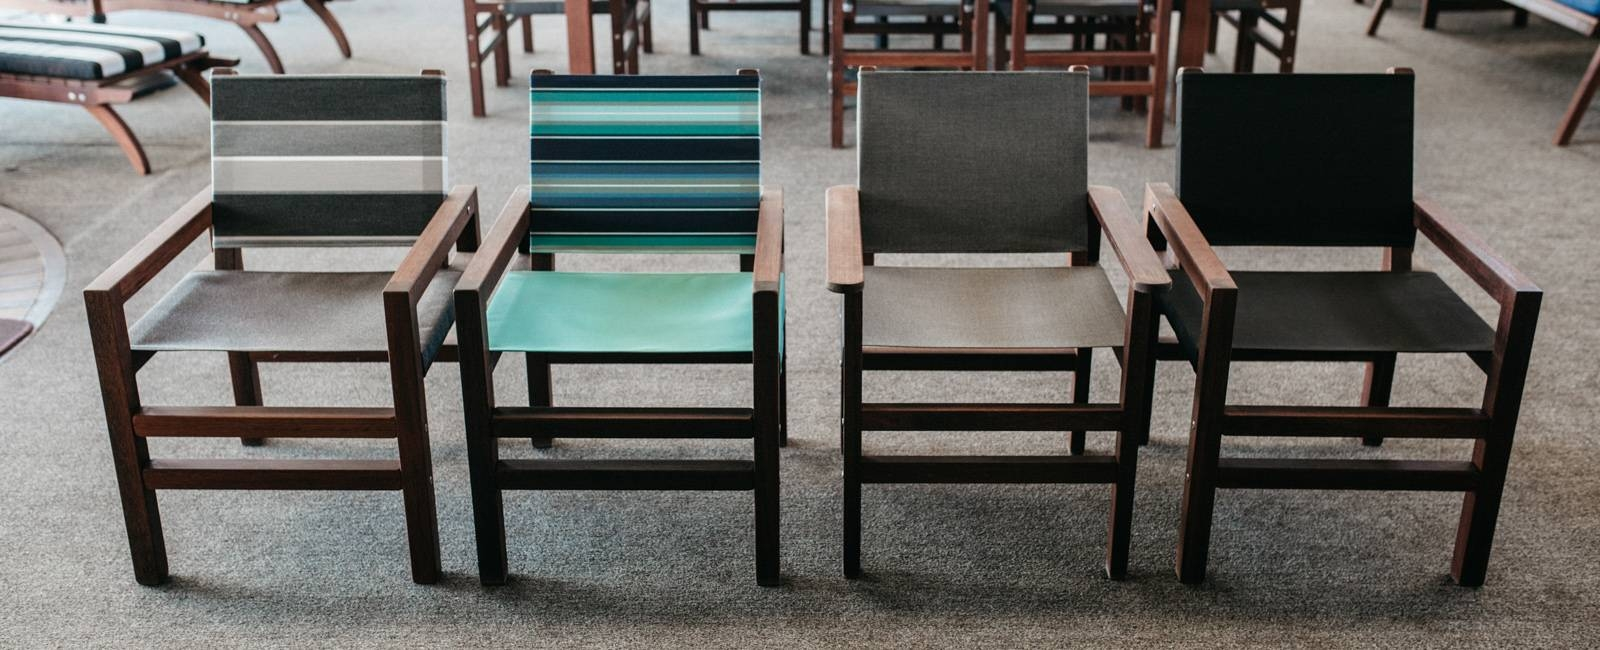 Clipper Outdoor Furniture Auckland Nz | Dining Chairs, Tables with Outdoor Sofas and Chairs (Image 1 of 15)